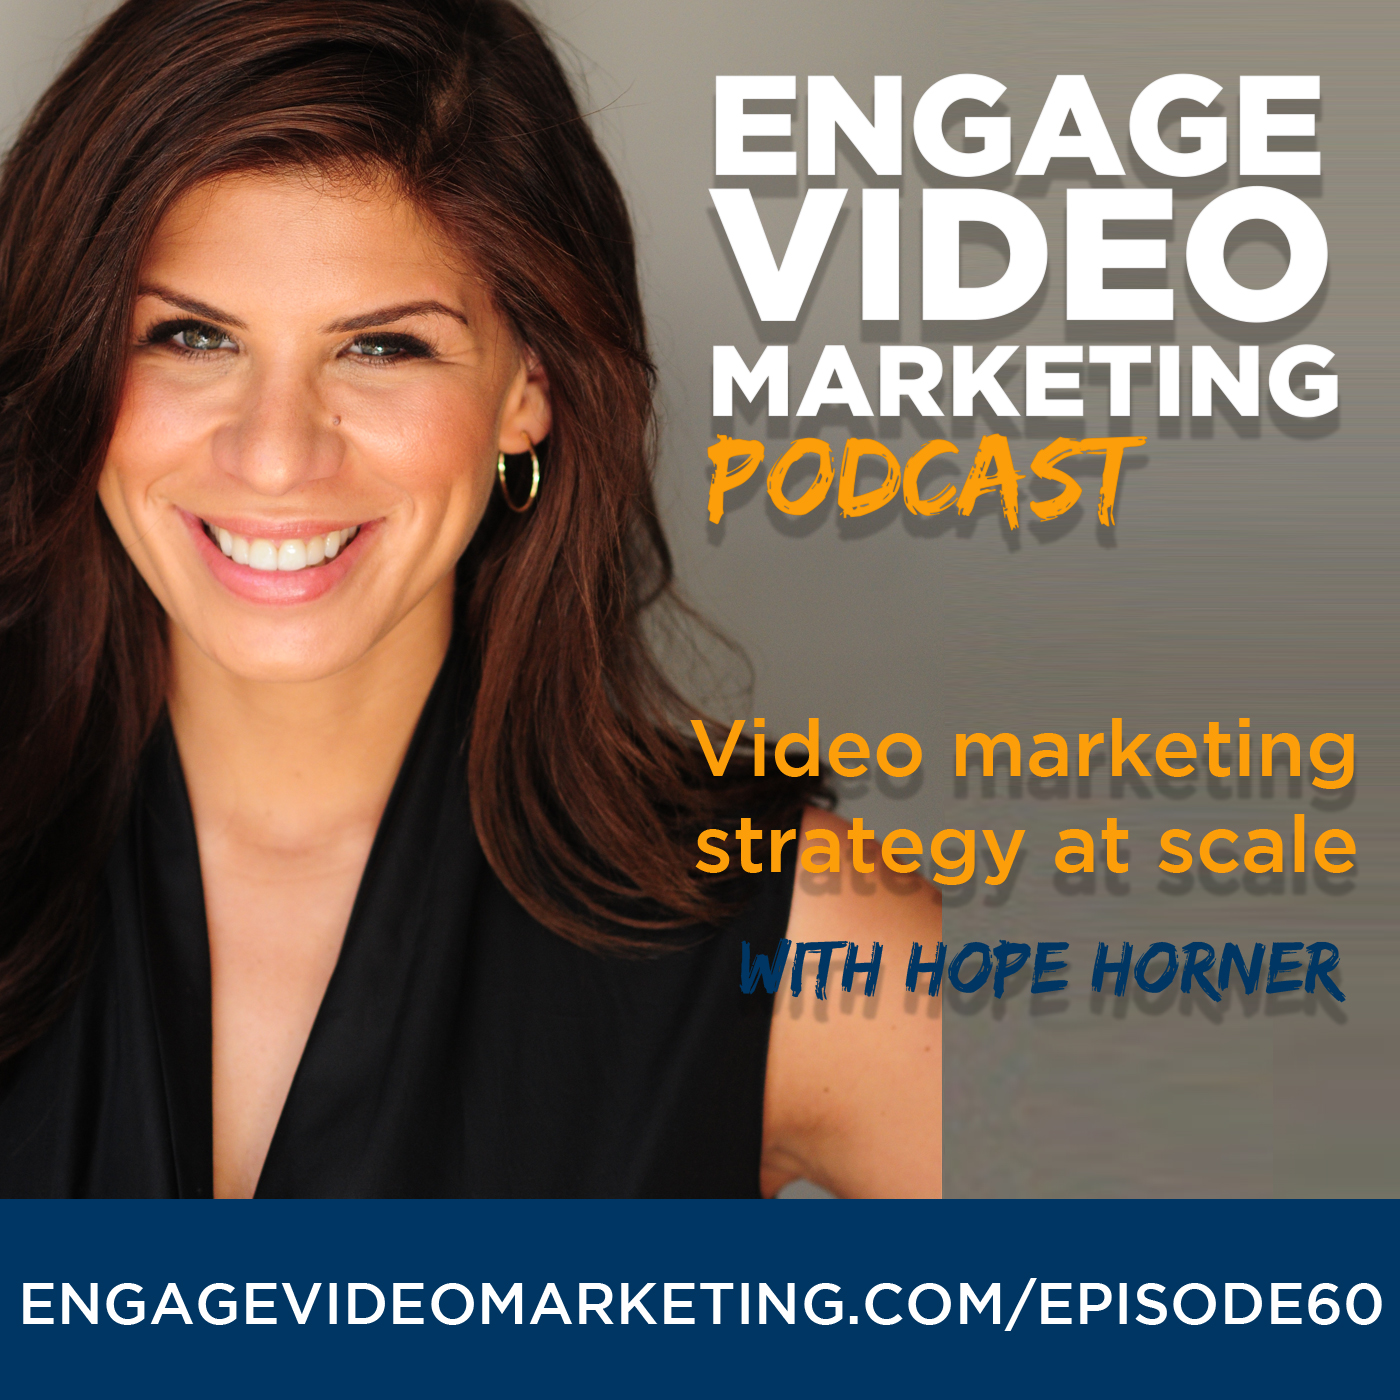 Video marketing strategy at scale with Hope Horner